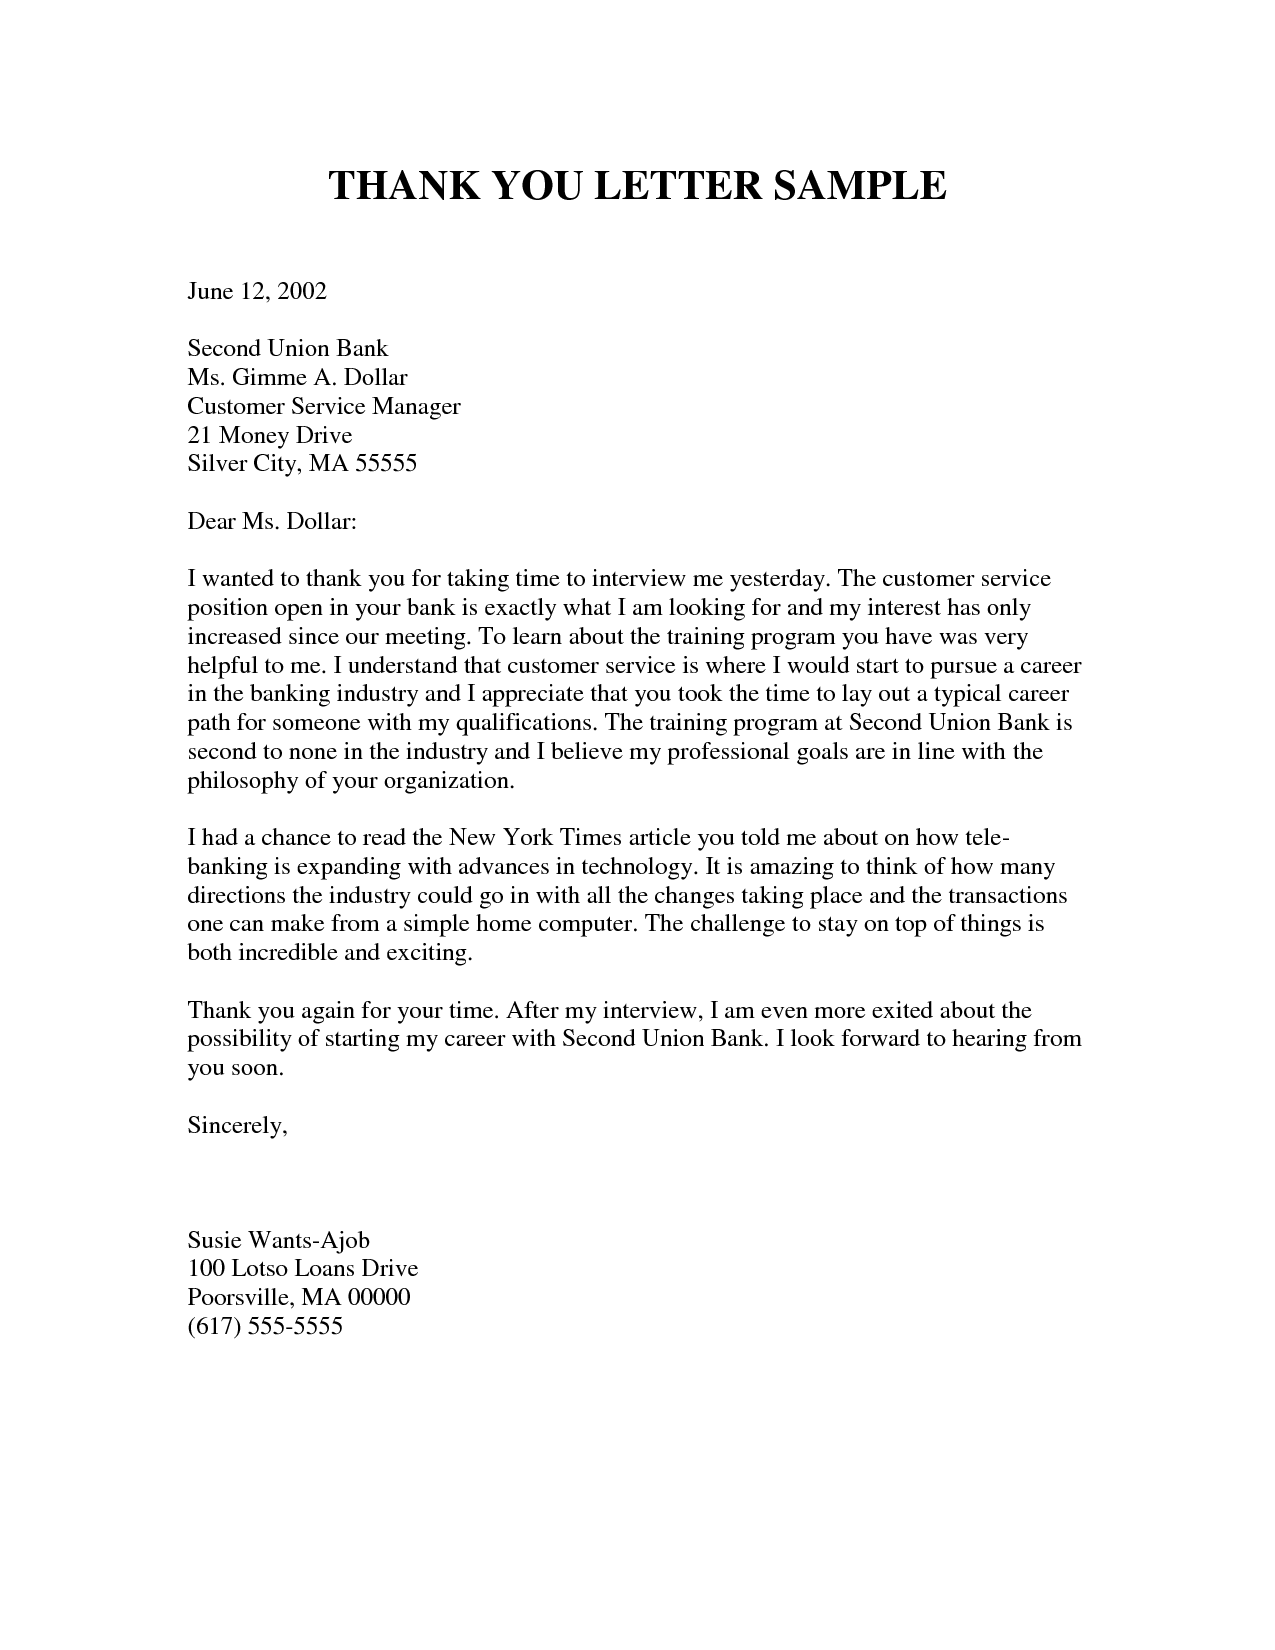 Thanking letter format best template collection thank you letters thanking letter format best template collection thank you letters for appreciation examples pdf word pronofoot35fo Images